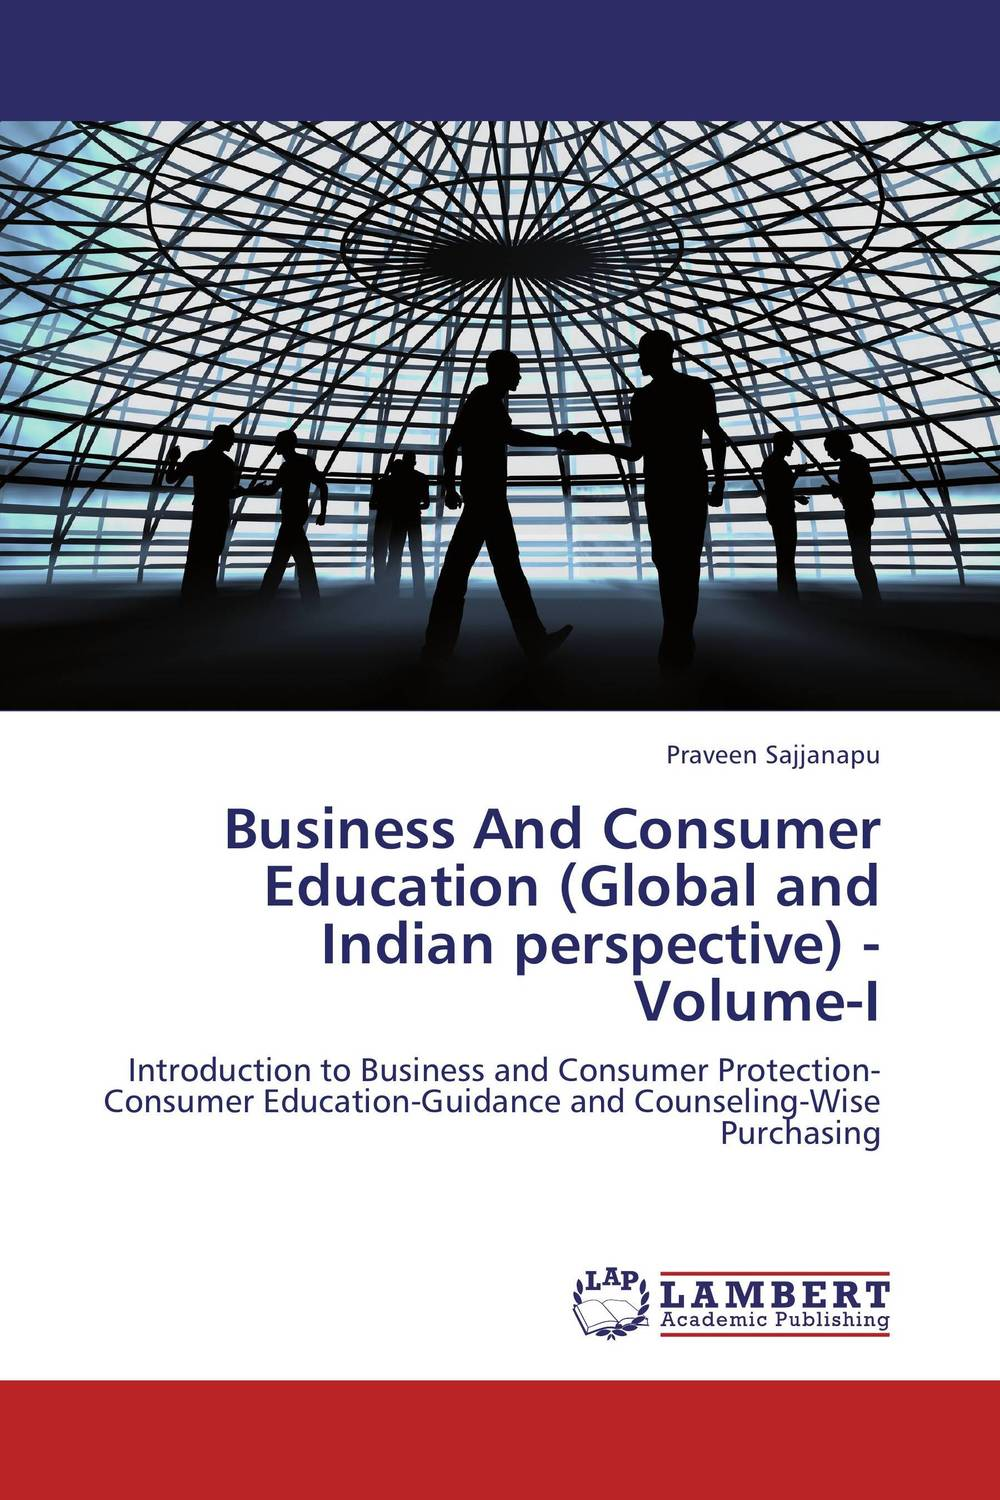 где купить  Business And Consumer Education (Global and Indian perspective) - Volume-I  по лучшей цене